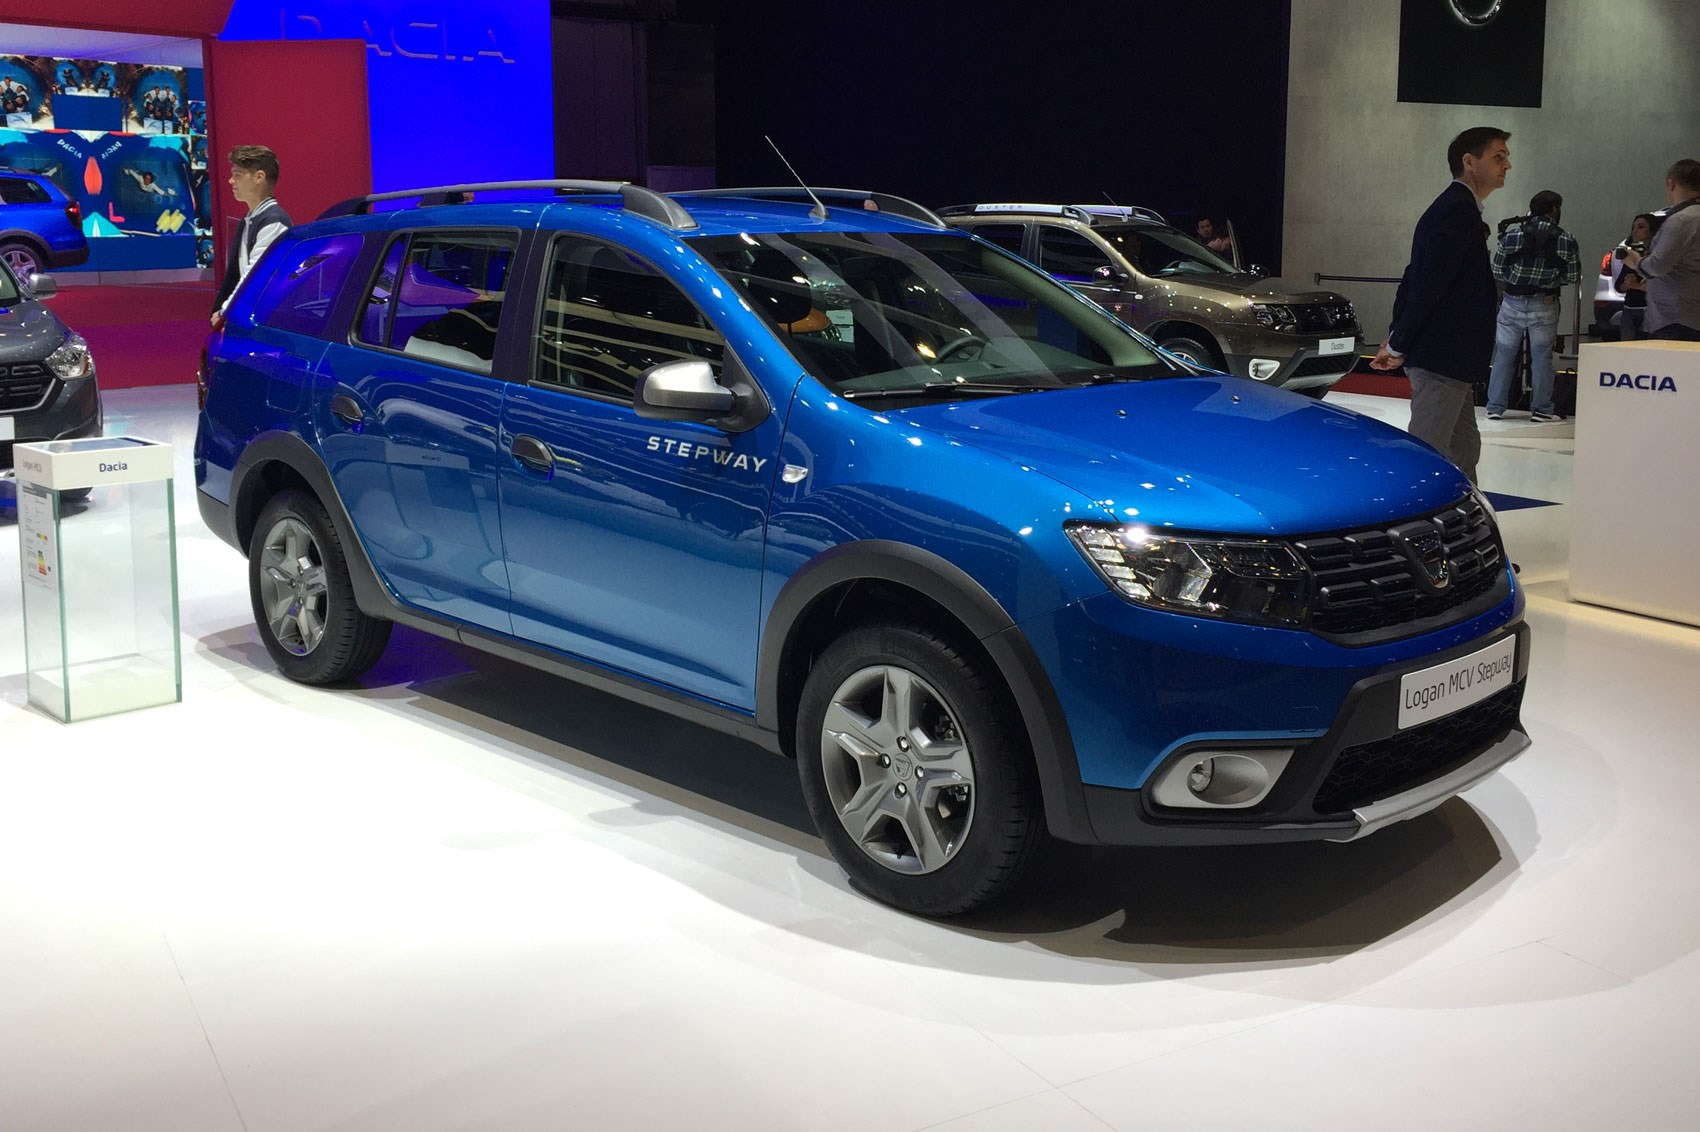 Dacia Sandero gets top grade by French auto mag 'L'Argus'